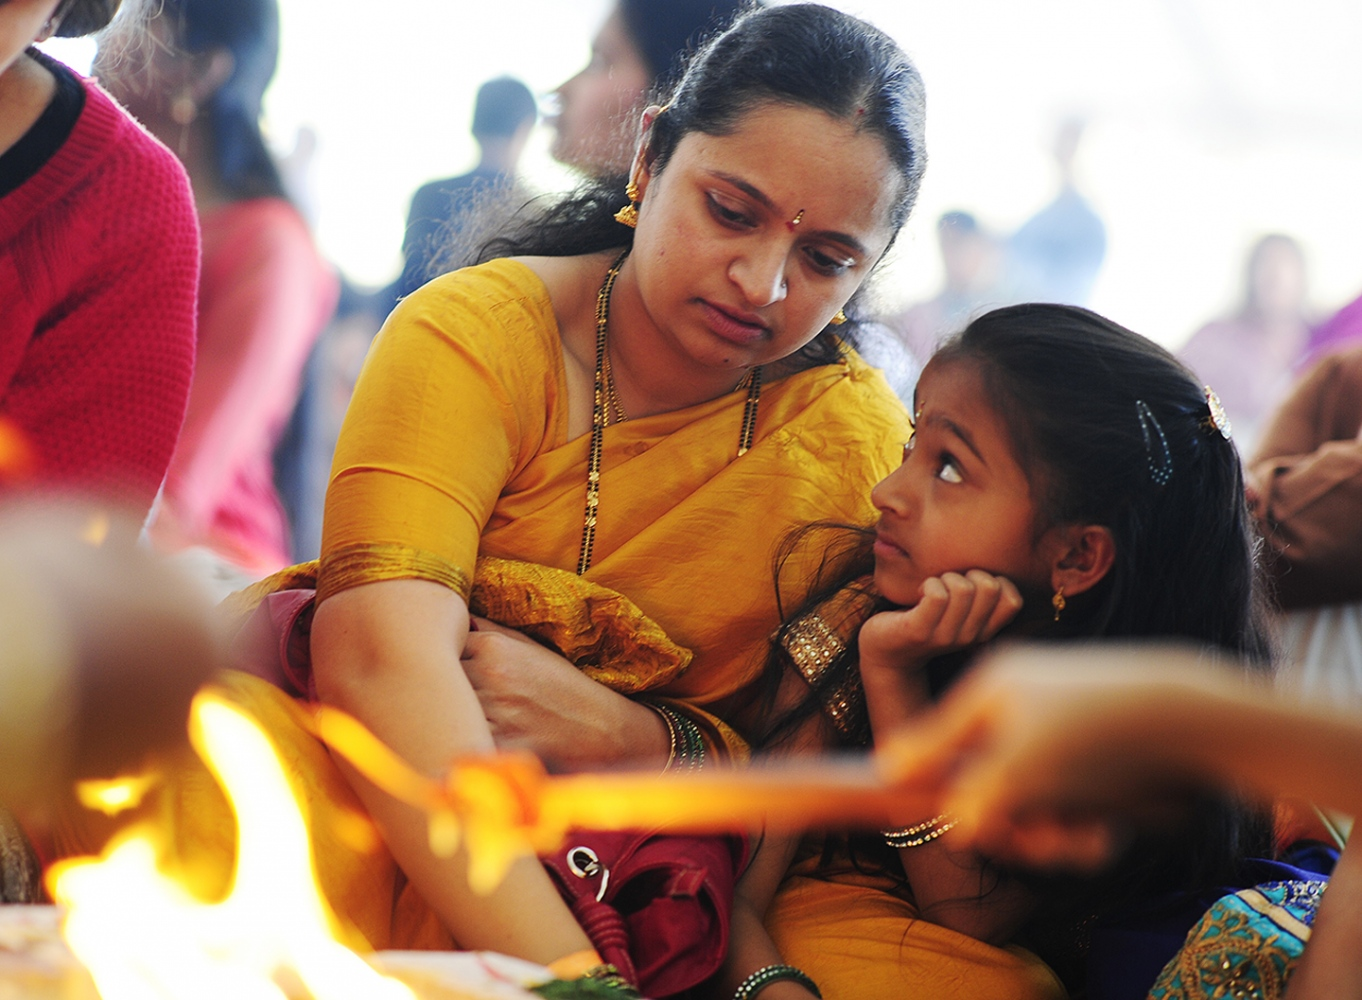 Welcoming A Permanent Sai Baba in Hindu Temple Shilpa Polakam makes sacrifices while her daughter, Sarayu, 8, watches on during a havan at the Shri Shirdi Saibaba Temple of Rockies on February 27, 2016 in Centennial, Colorado. The worshippers of the temple held a havan, which is a fire ritual where they make offerings, to provide energy to bring to life their permanent statue of Sai Baba. Outside of the havan, they made offerings to take the figure through a purification ritual before setting it in it's permanent place Sunday. (Photo by Brent Lewis/The Denver Post)